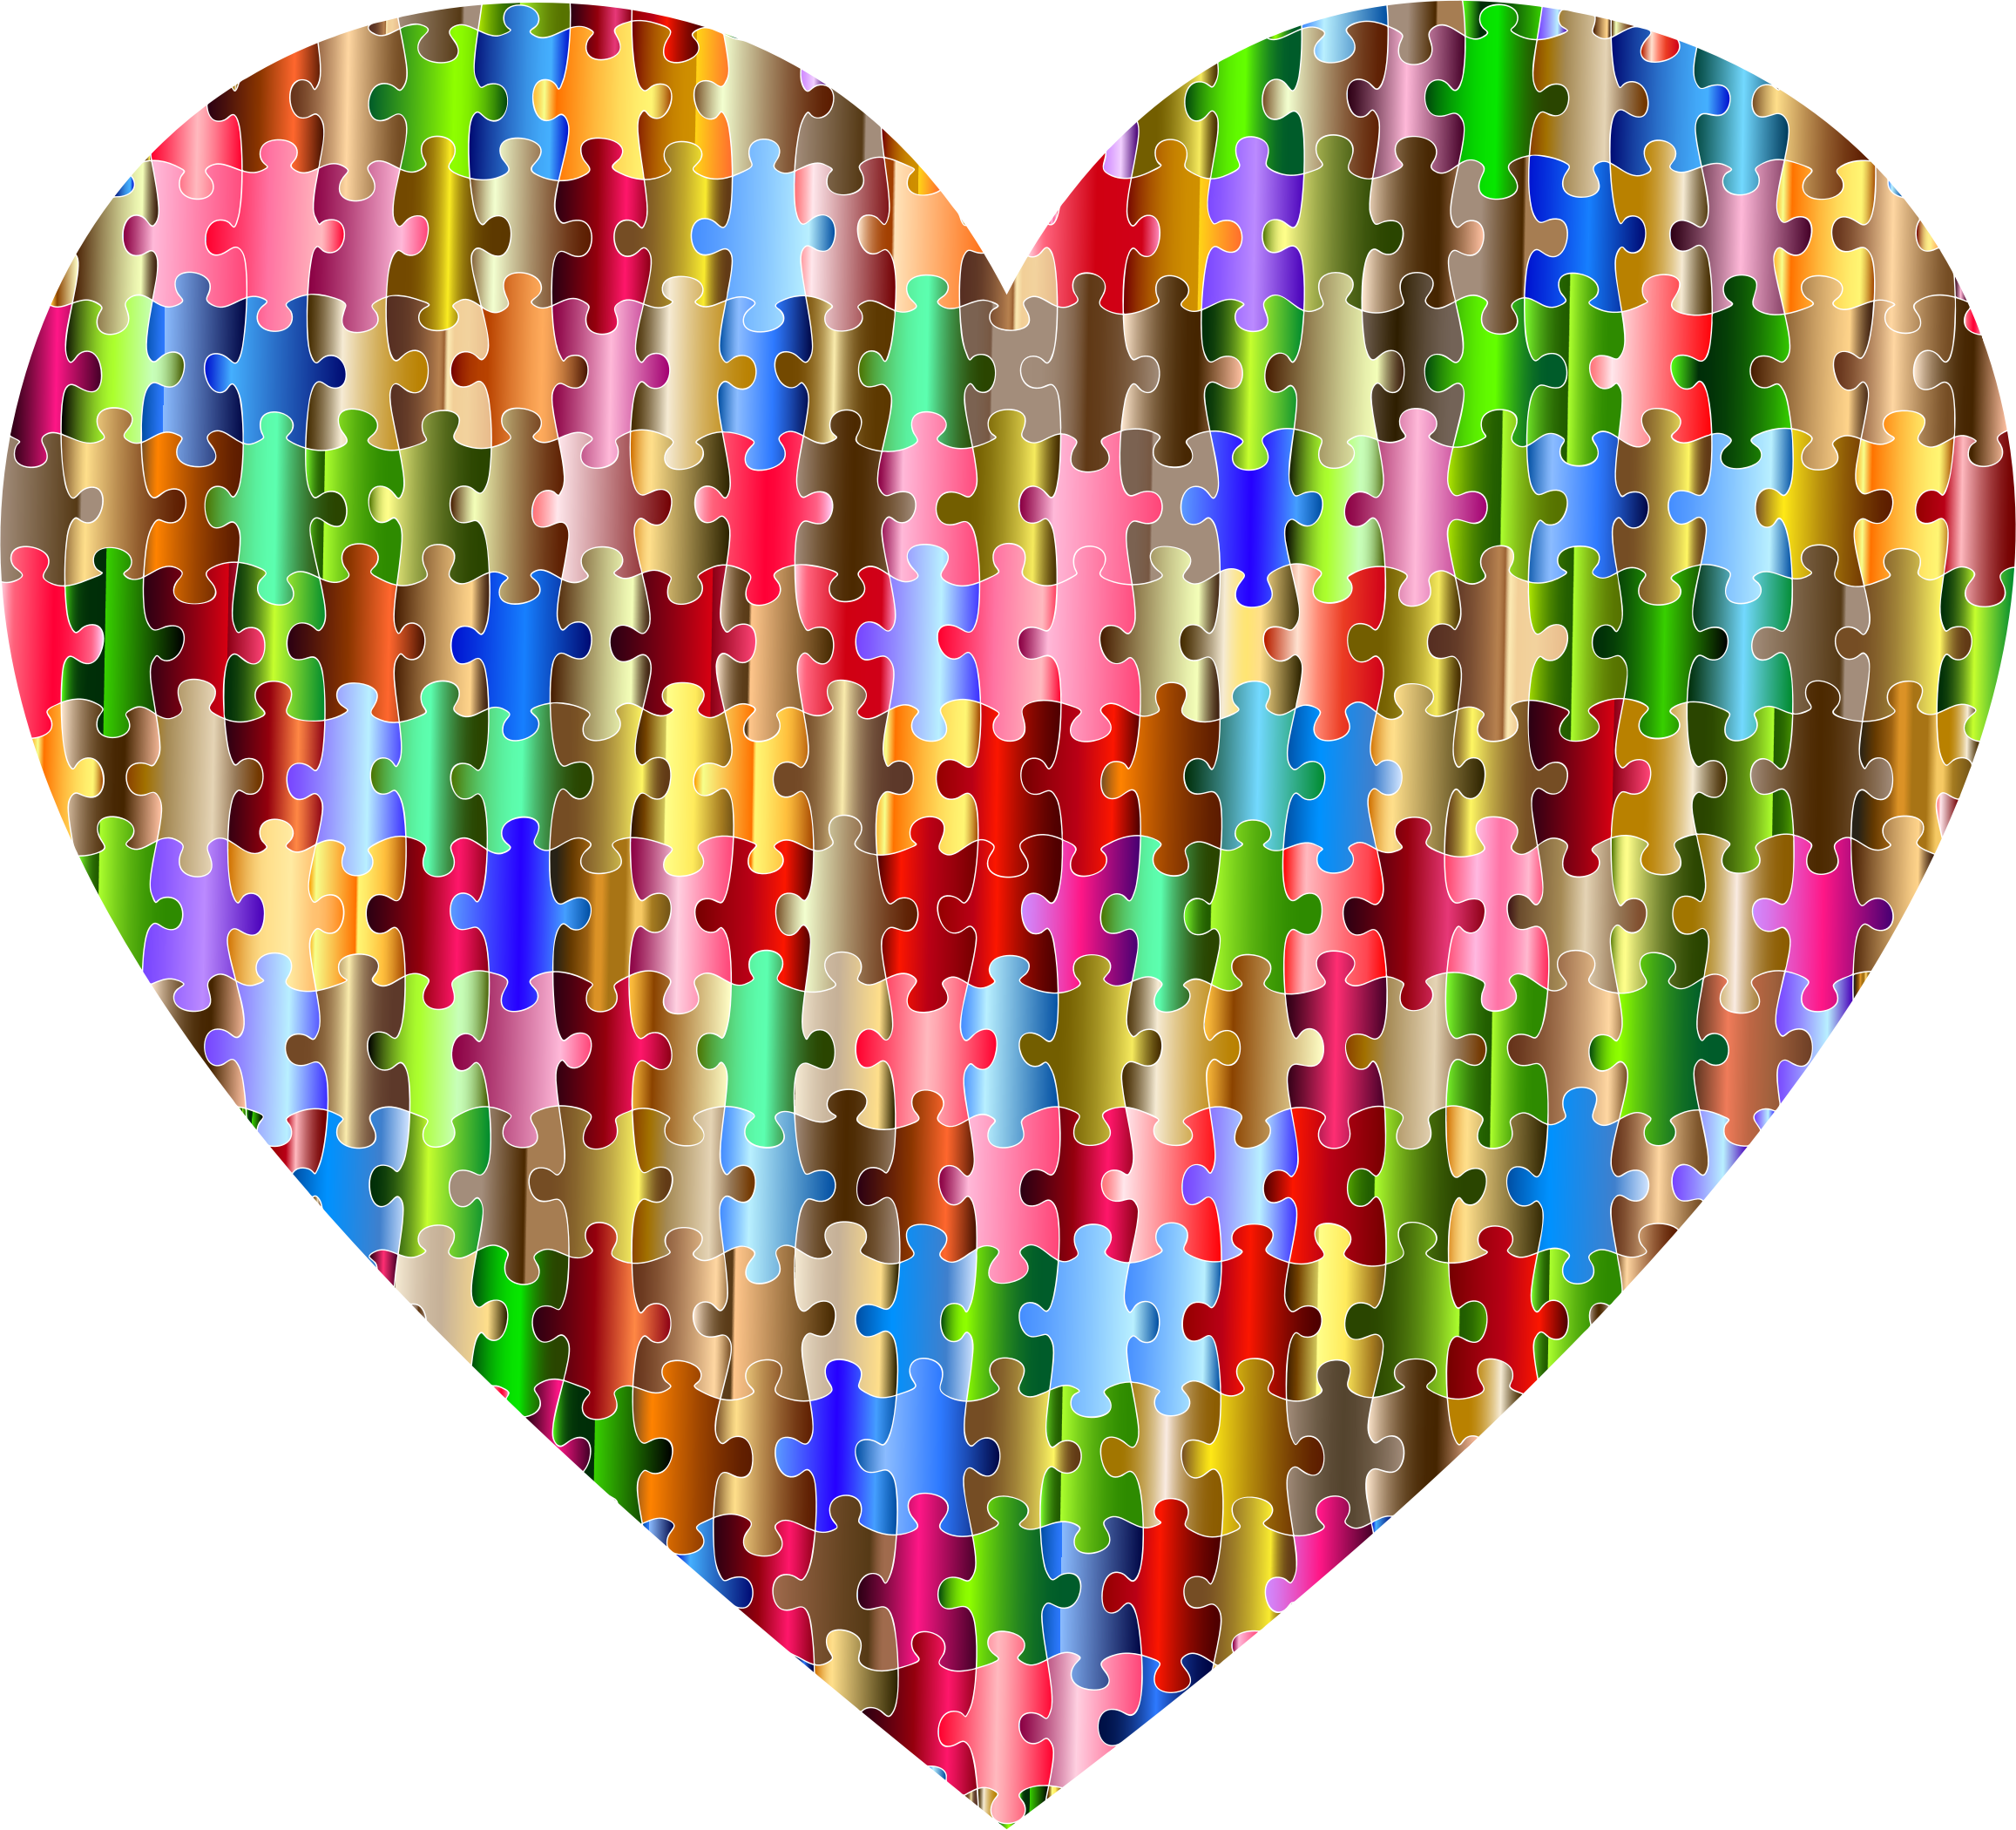 Puzzle heart clipart image black and white download Clipart - Colorful Puzzle Heart 8 image black and white download